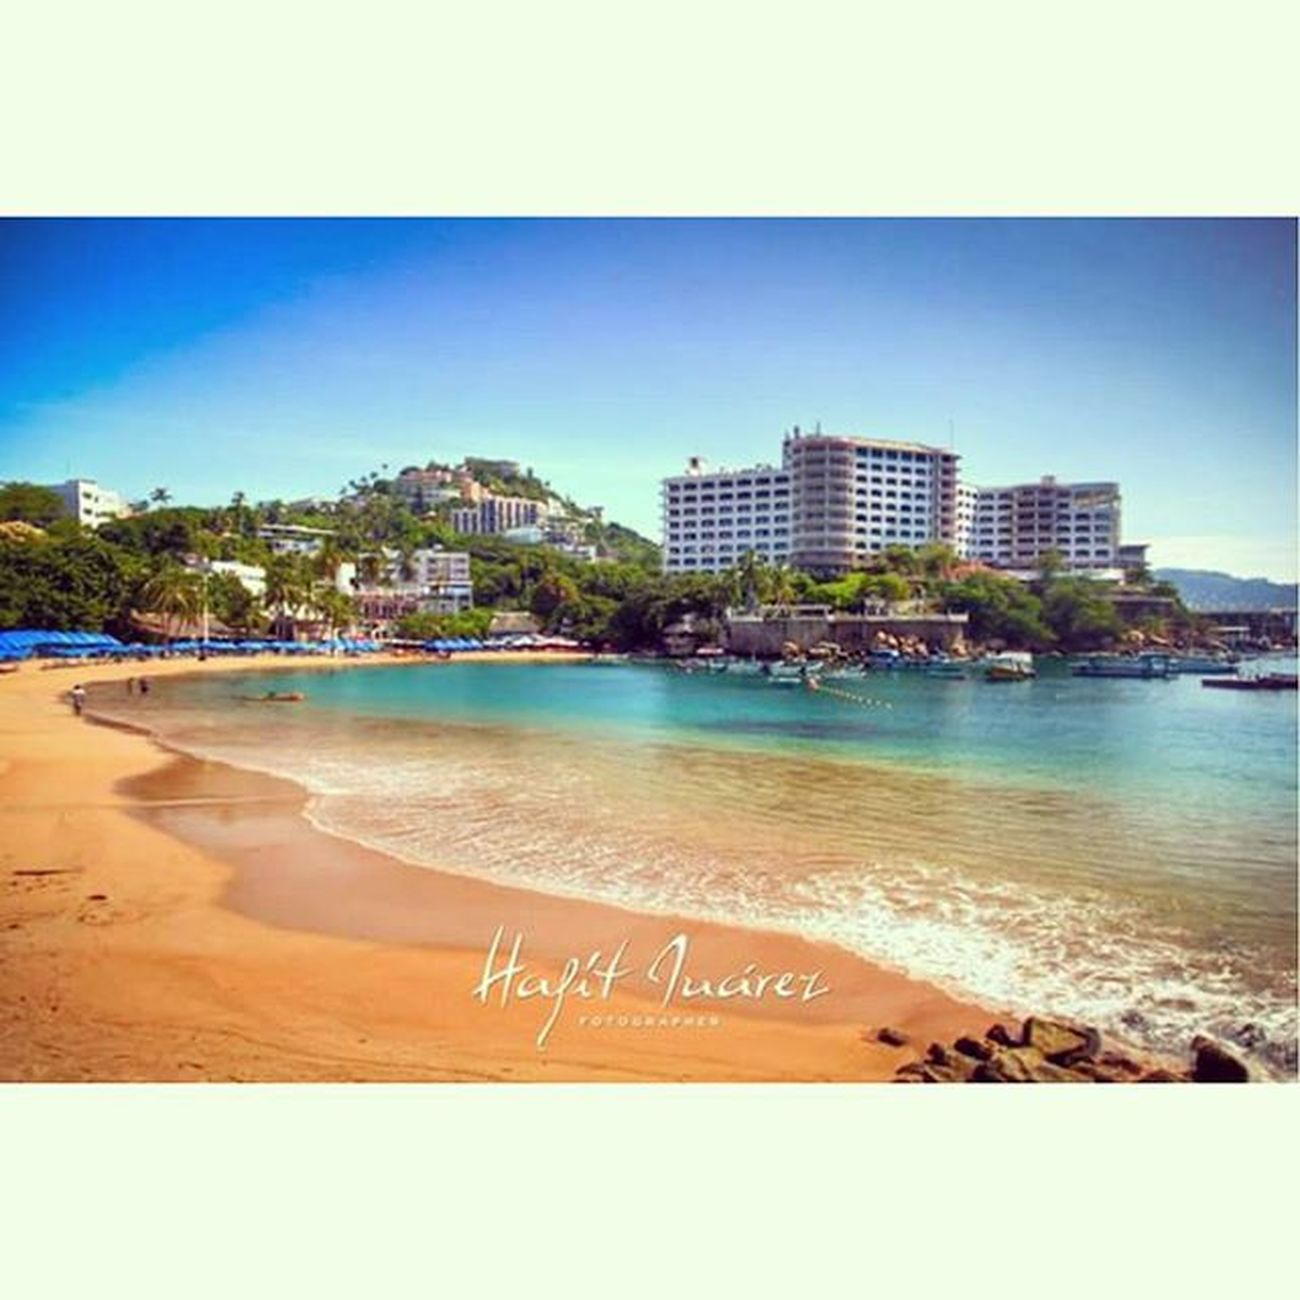 Instasize Acapulco Caleta Mexico beachlife beach hdr_lovers hdr_captures hdr_pics estoesmexico colors conocemexico @conoce_mexico